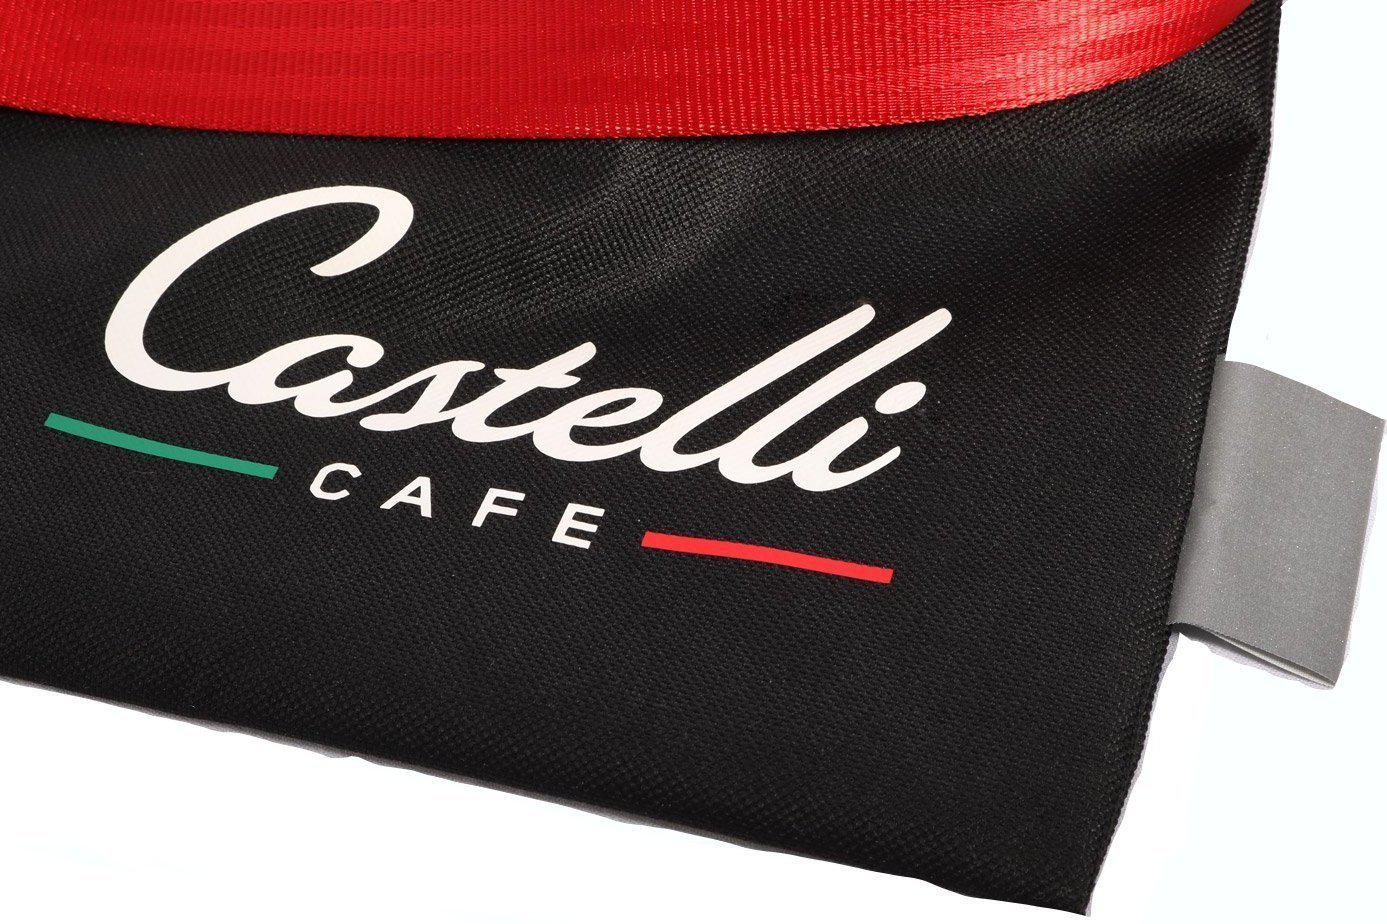 Castelli-Castelli Café Il Soigneur Musette-Black-UNI-CS010002-saddleback-elite-performance-cycling